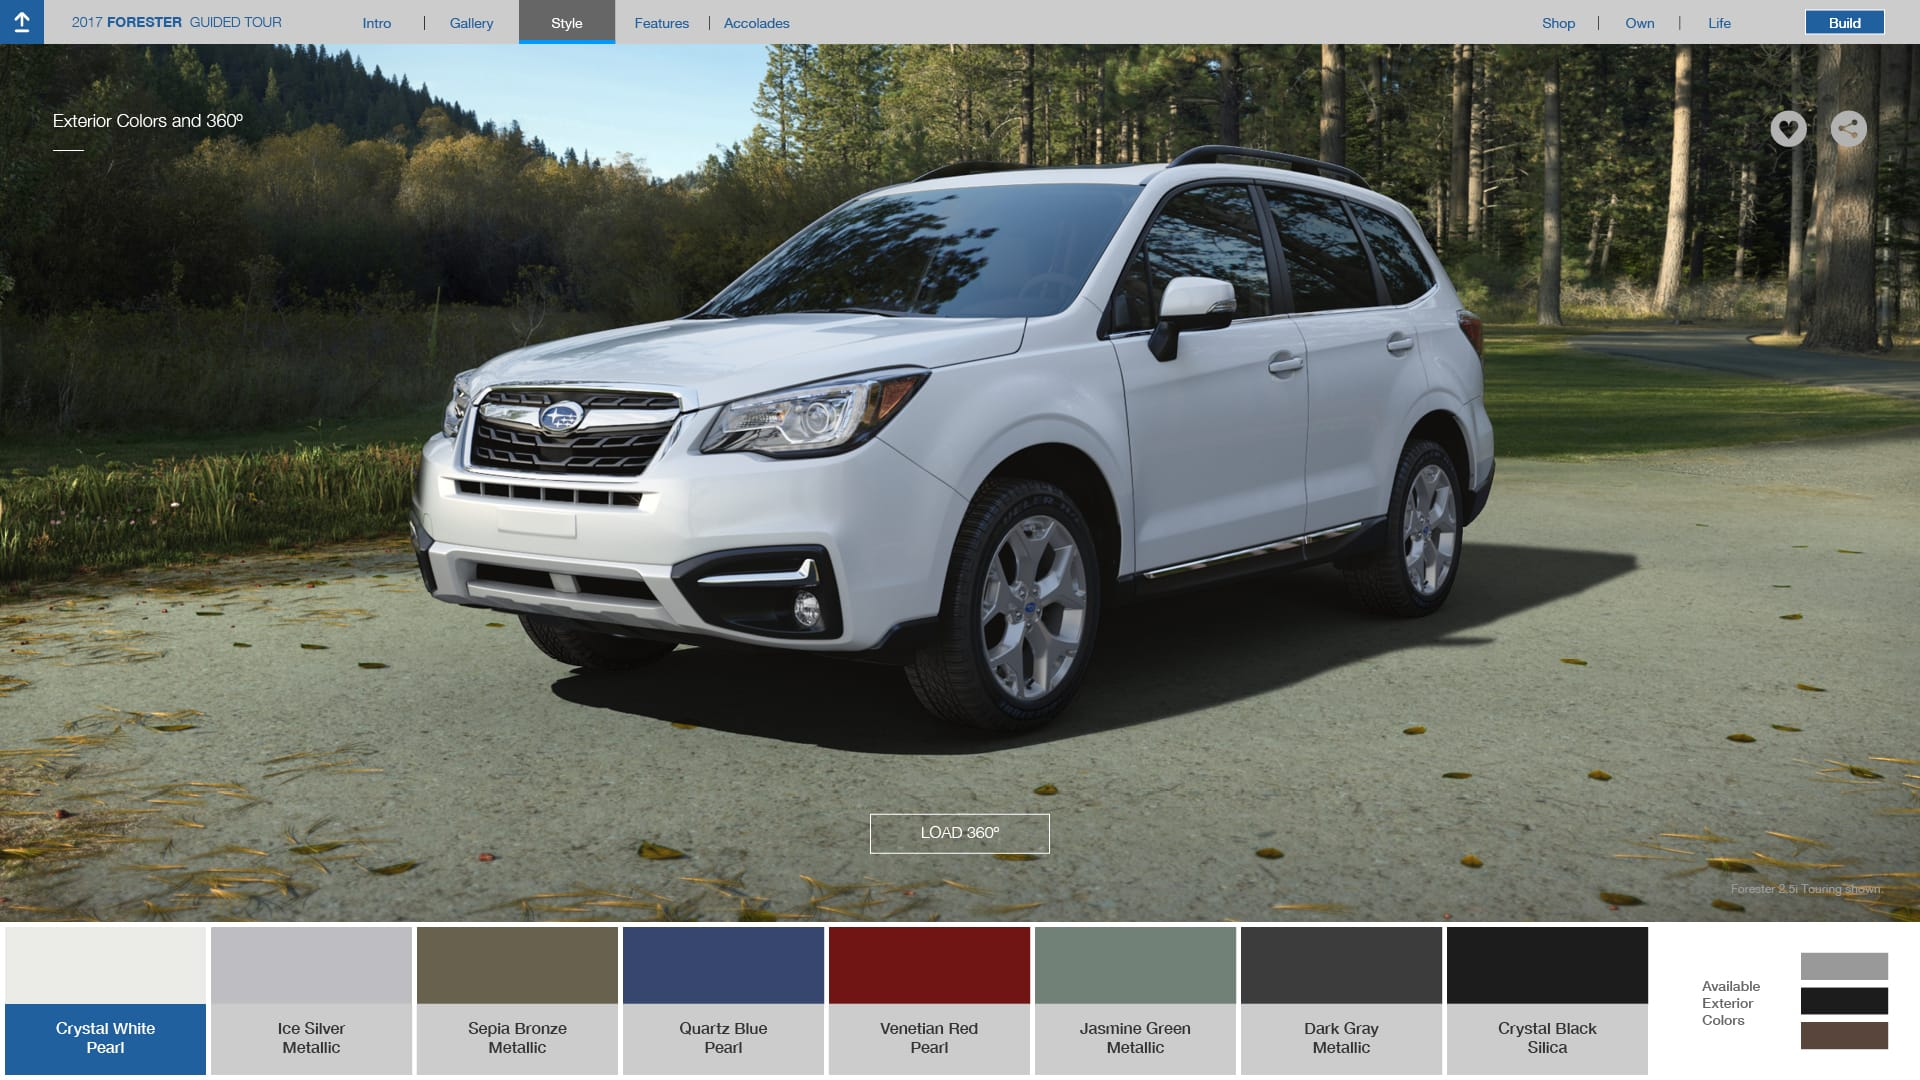 Build Your Own Subaru >> Subaru Forester Colors Options | 2017 Subaru Forester